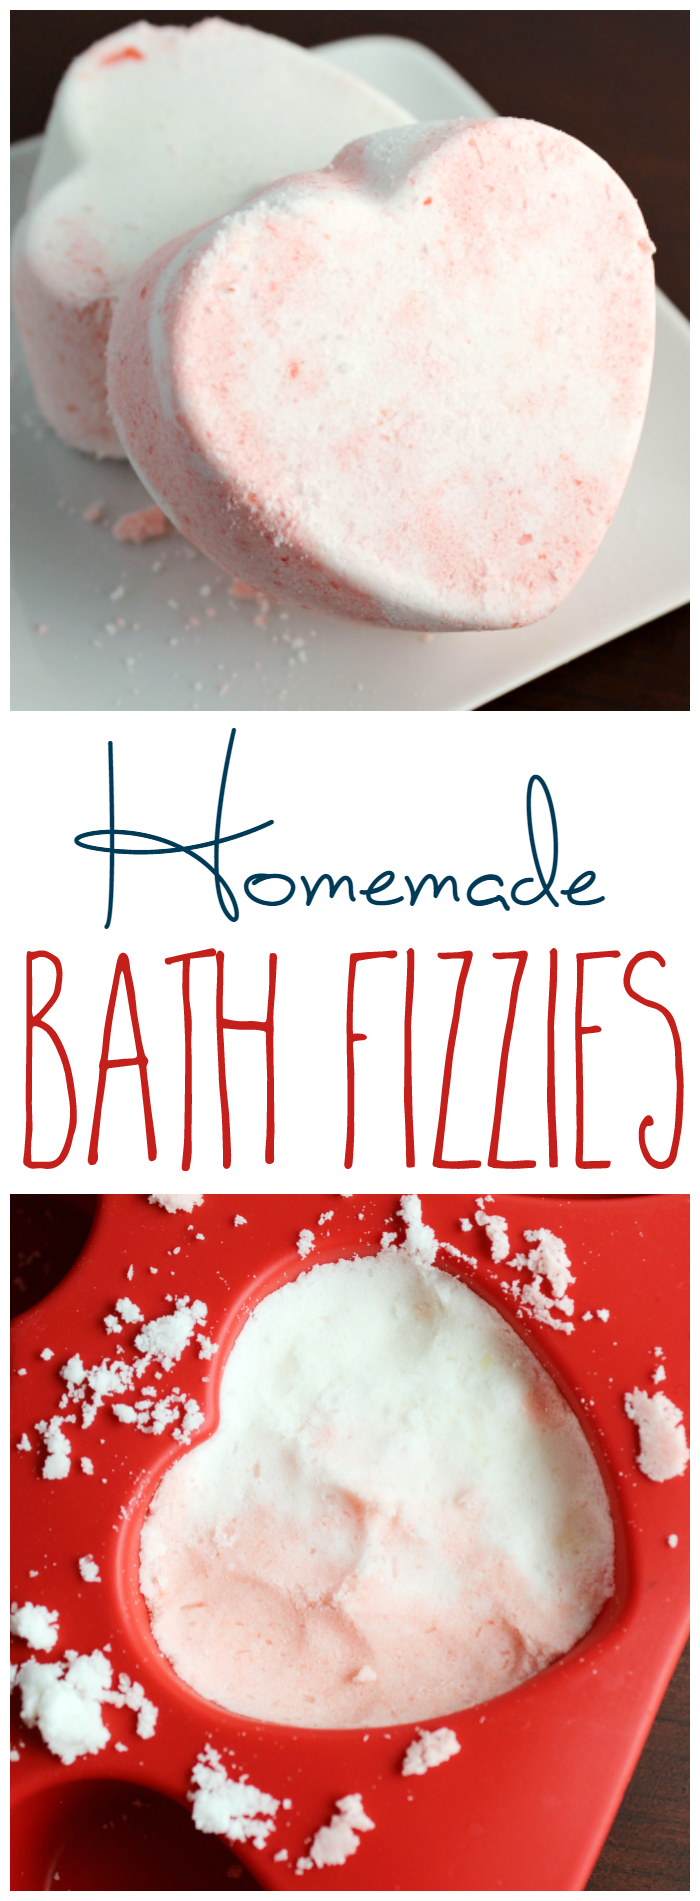 Bath bombs or bath fizzies are pretty easy to put together and definitely cheaper than buying from a store! You can customize these homemade bath fizzies however you want!